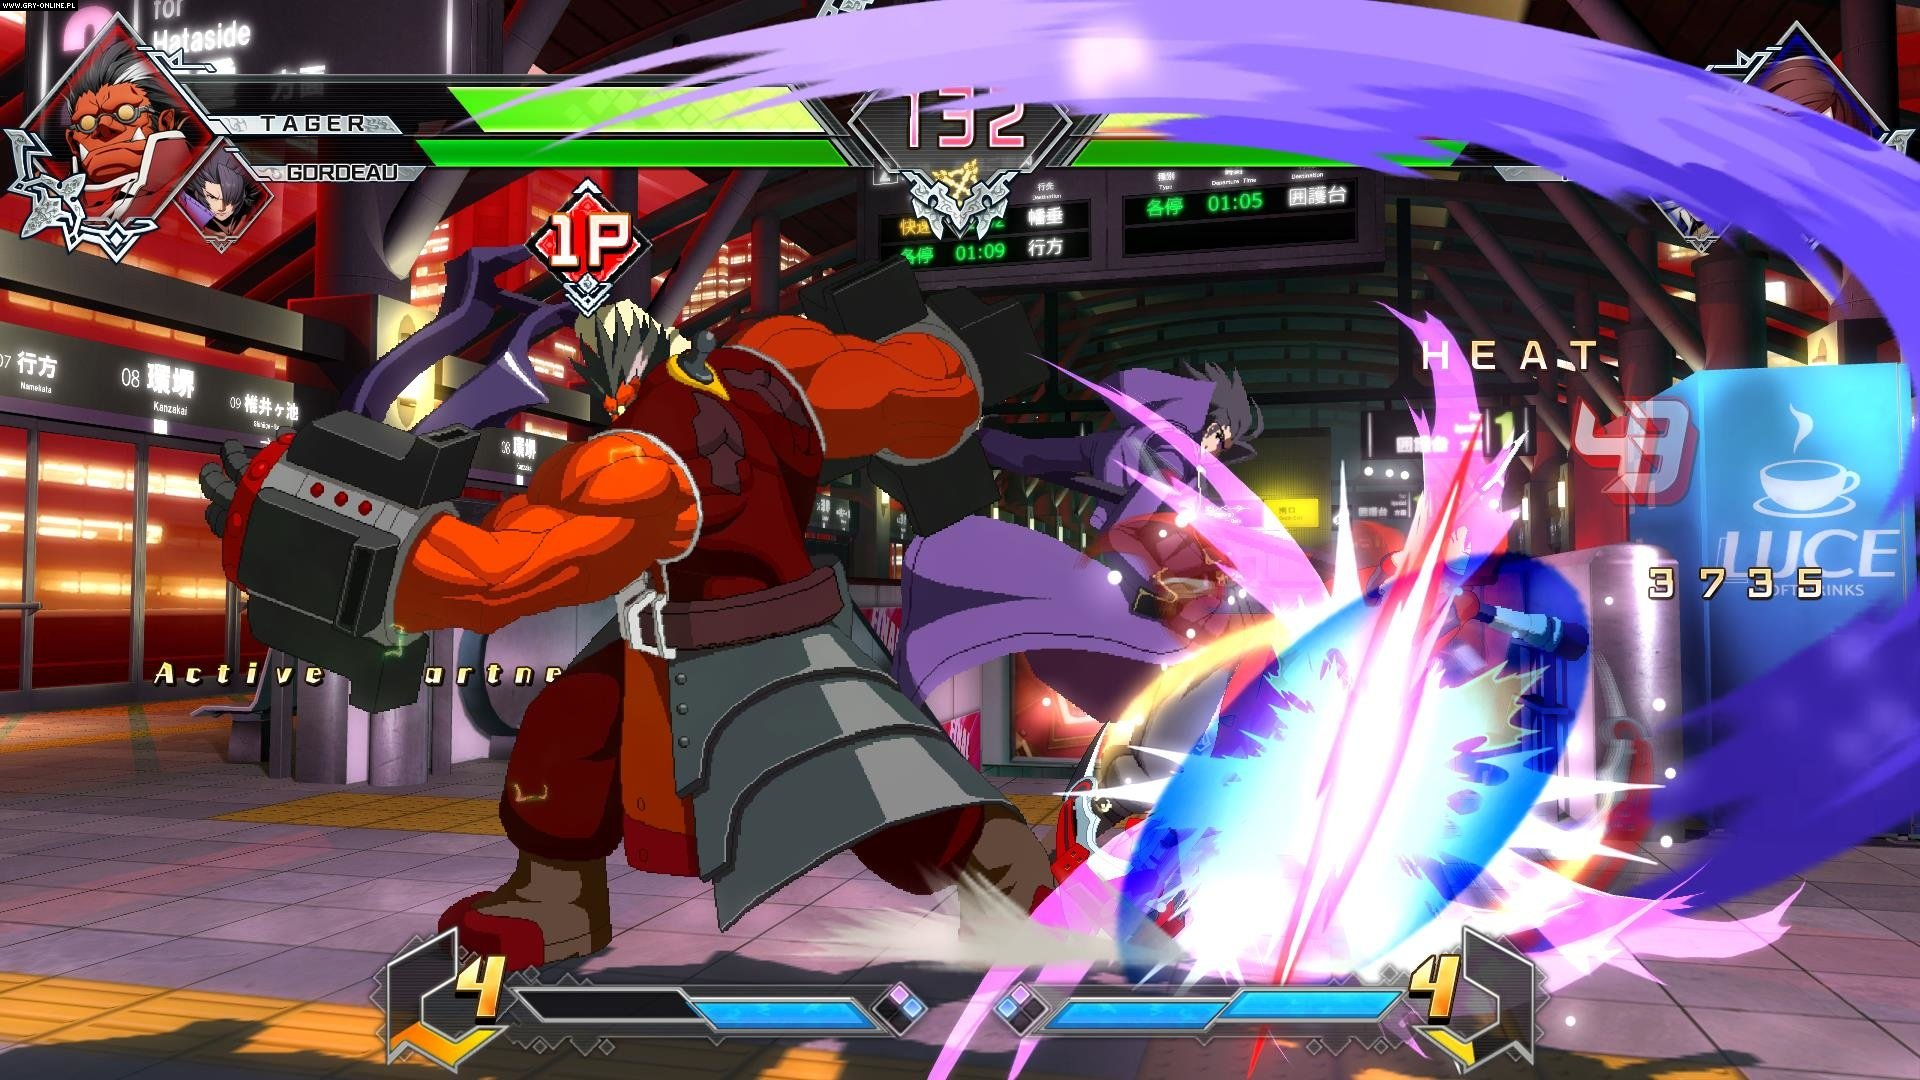 BlazBlue: Cross Tag Battle PC, PS4, Switch Gry Screen 3/109, Arc System Works